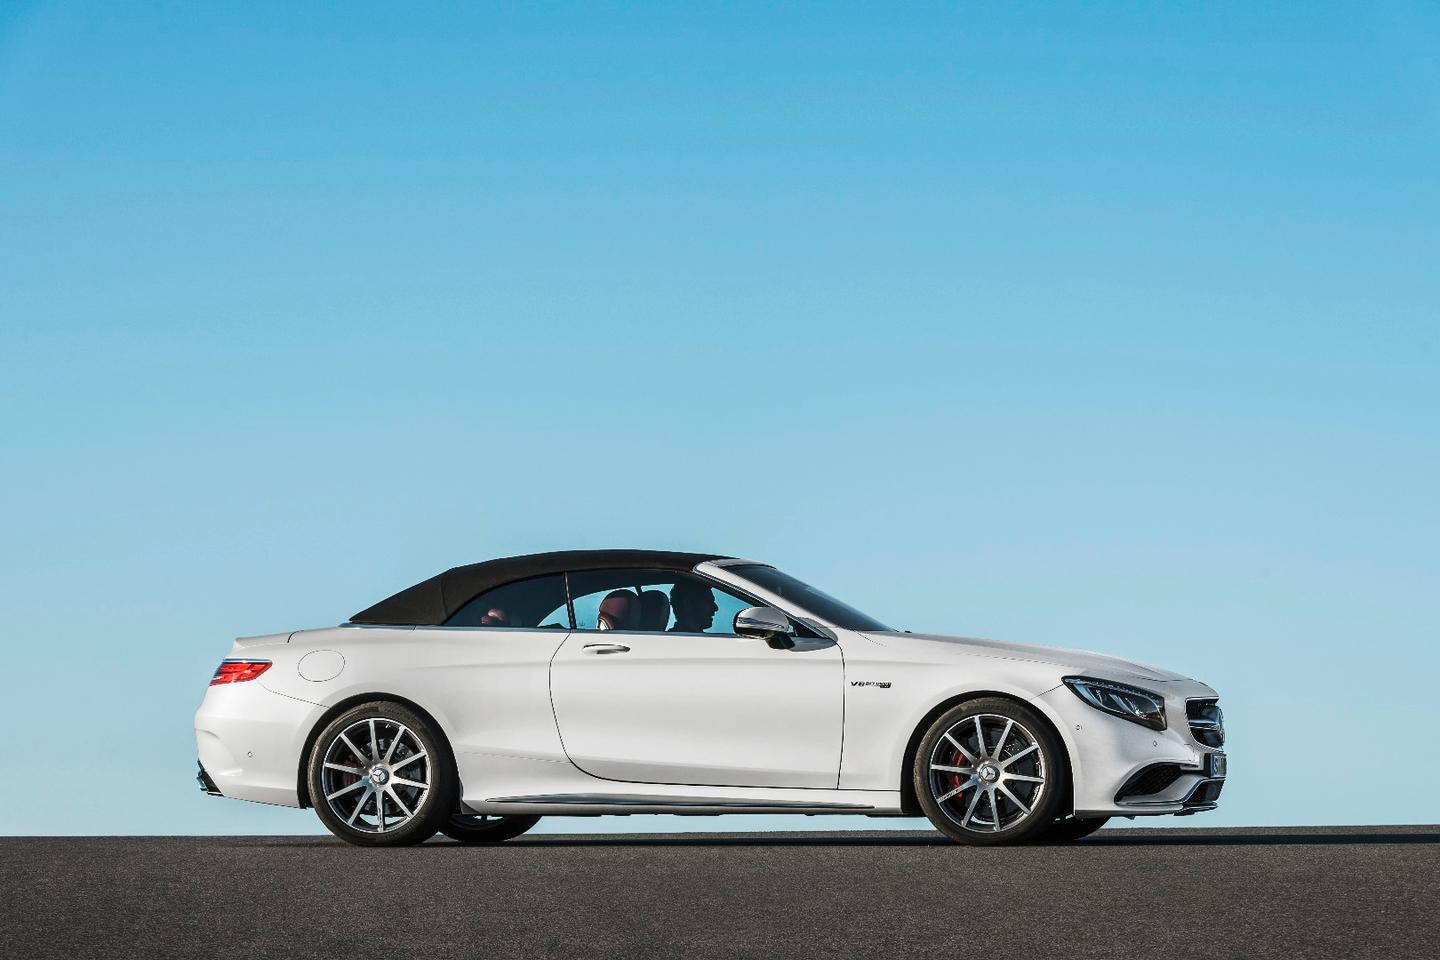 The S-Class soft top can be put up or down at up to 60 km/h.